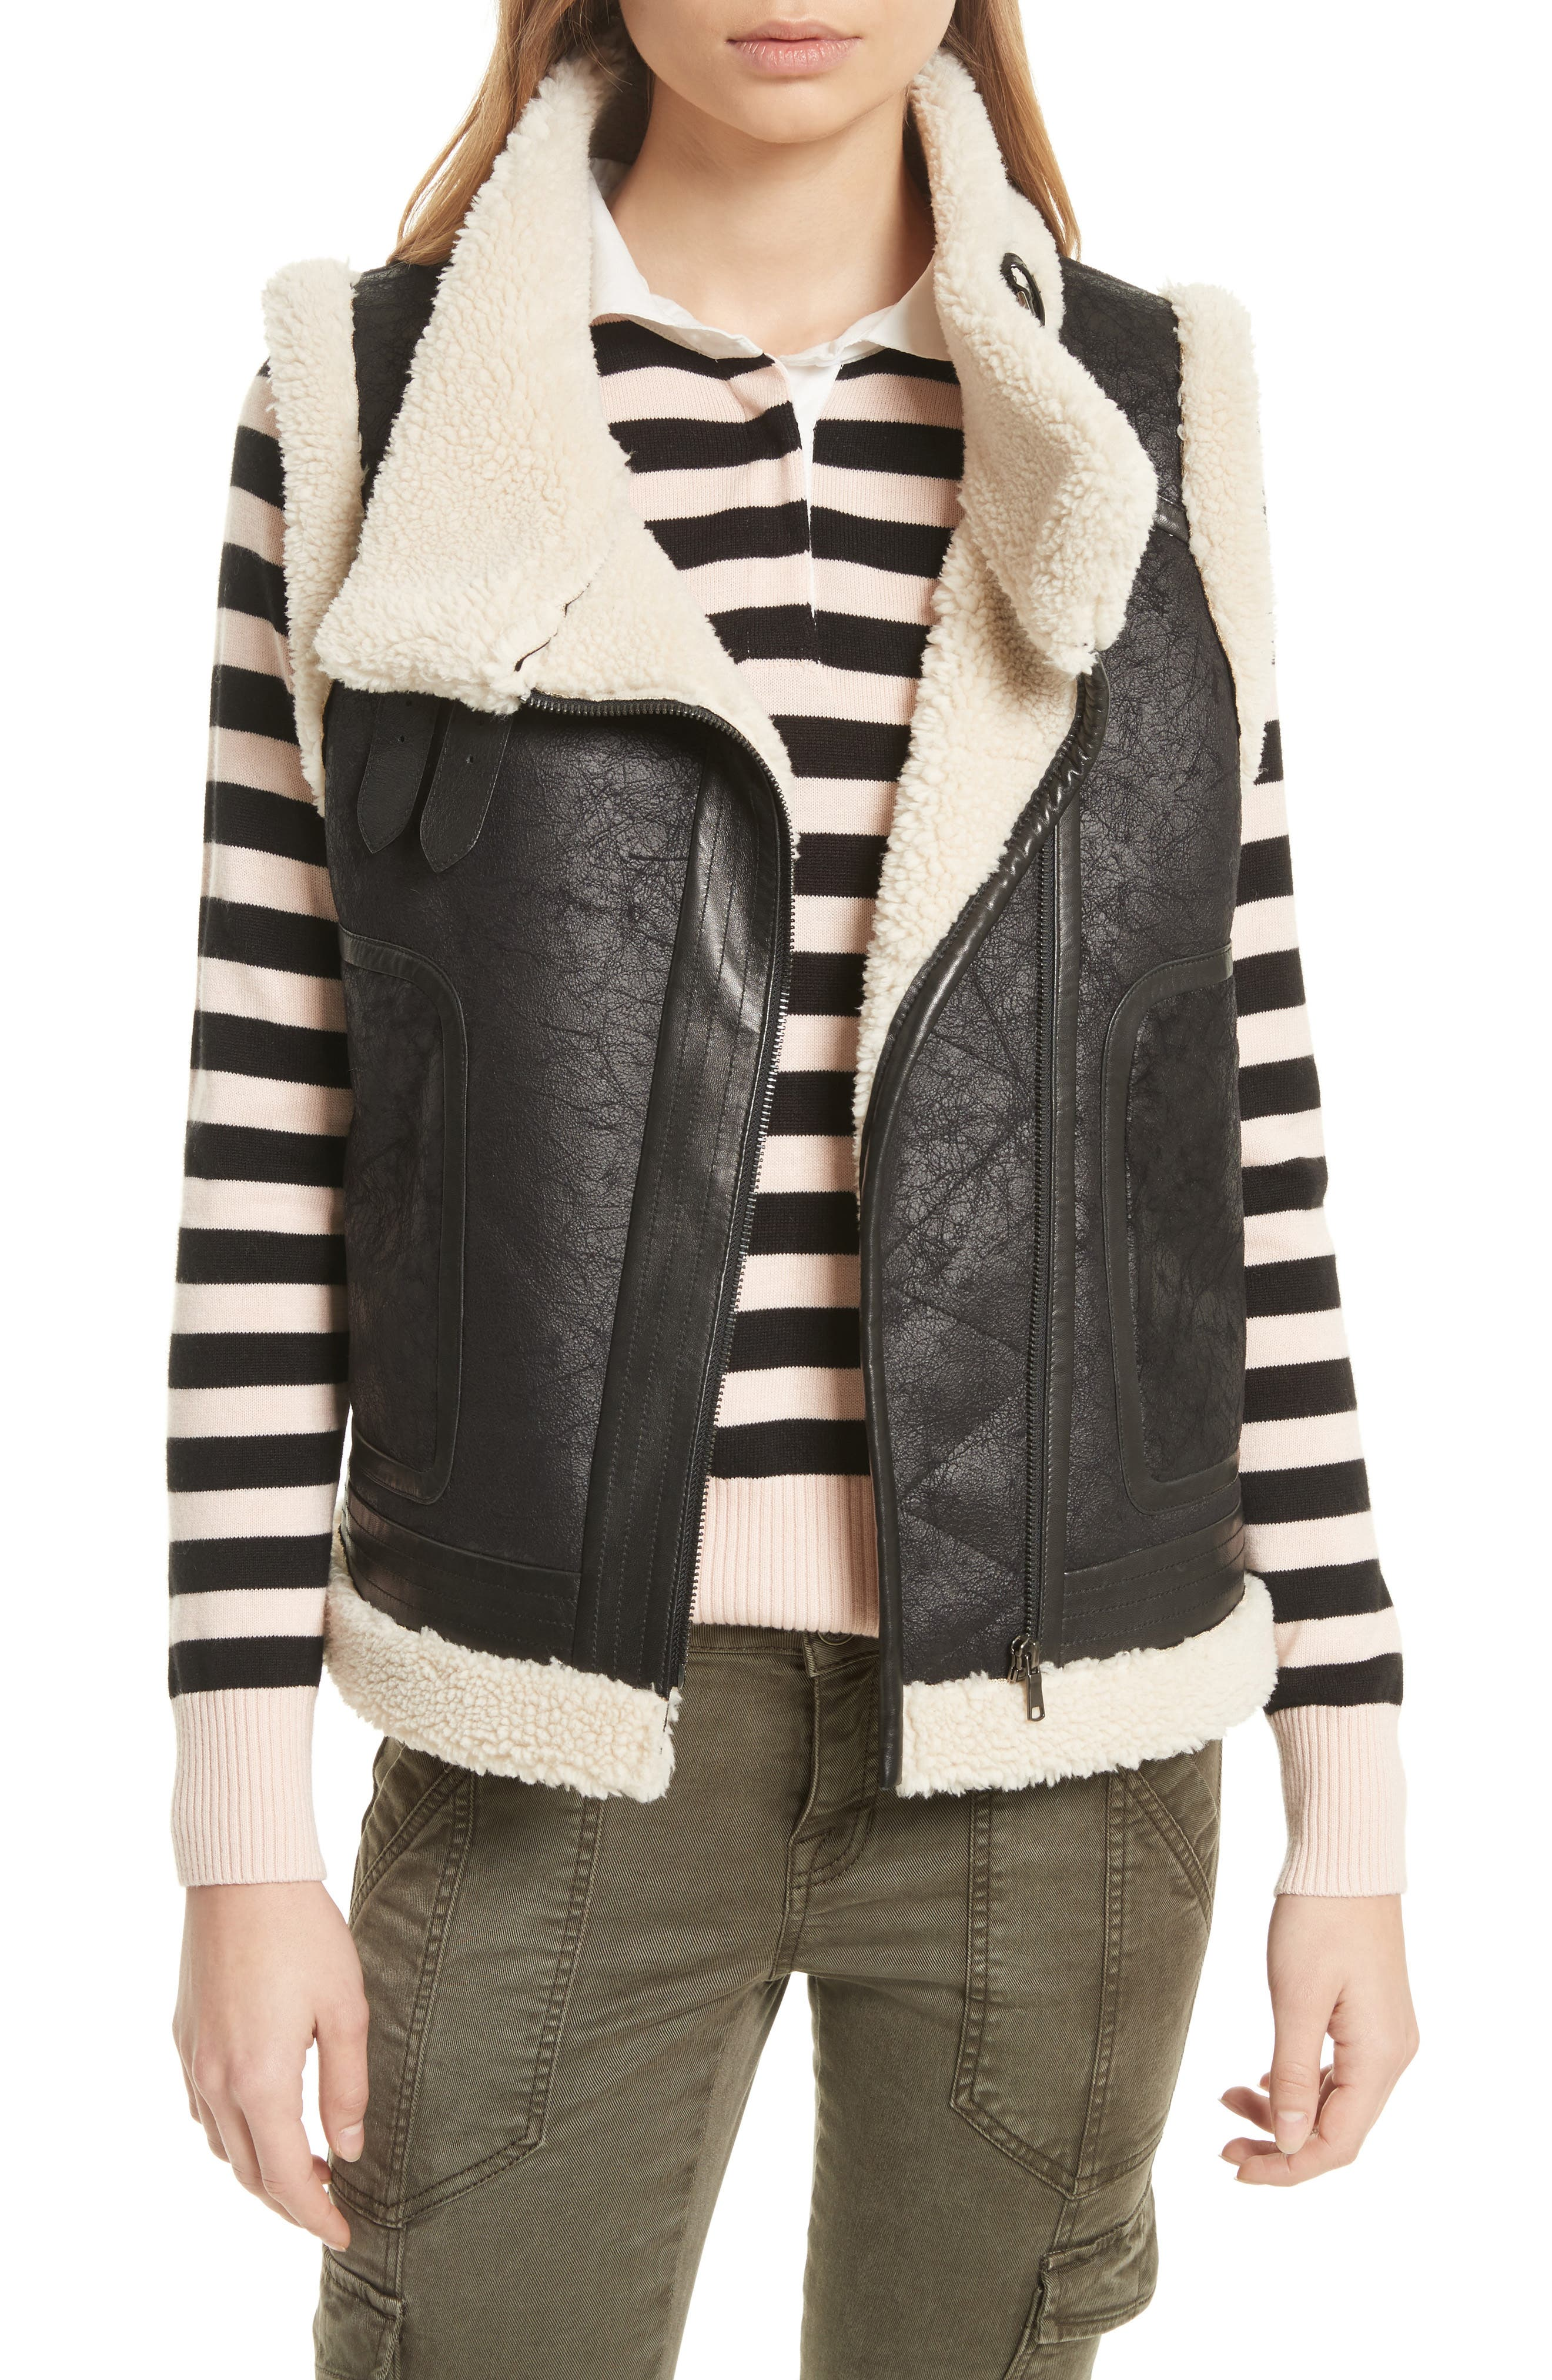 Alternate Image 1 Selected - Joie Danay Faux Shearling Vest